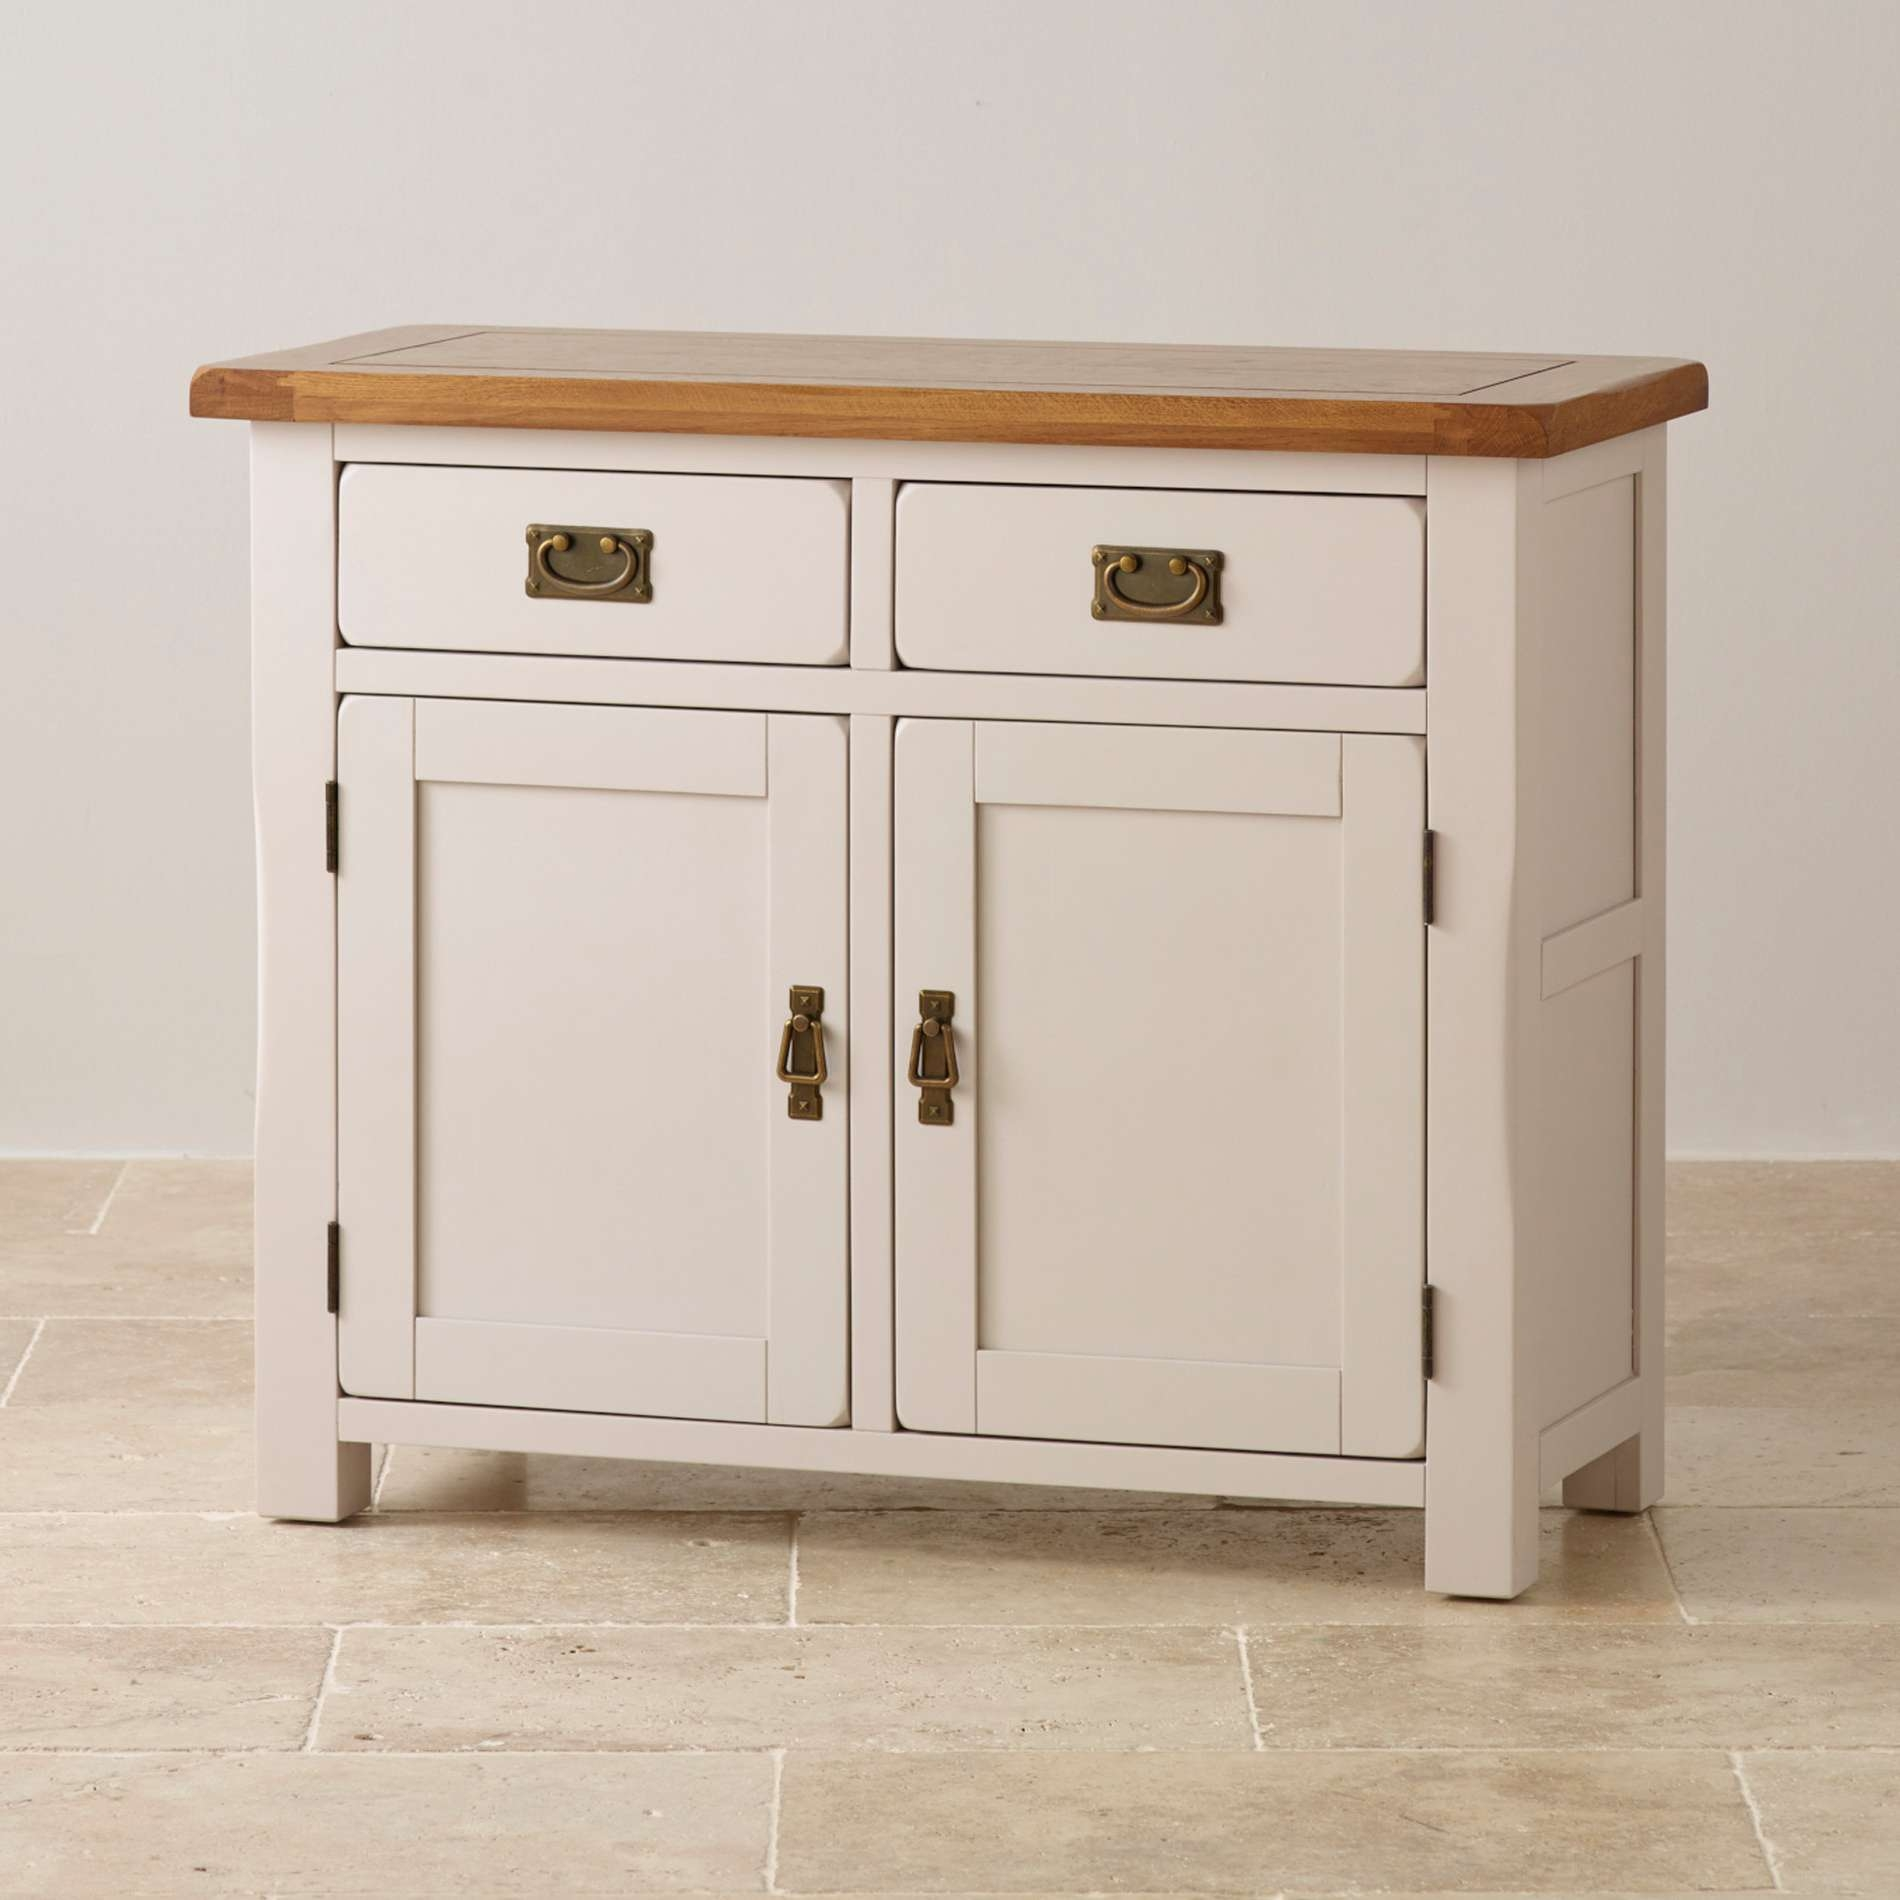 Kemble Small Painted Sideboard In Rustic Solid Oak Pertaining To Small Sideboards Cabinets (View 2 of 20)